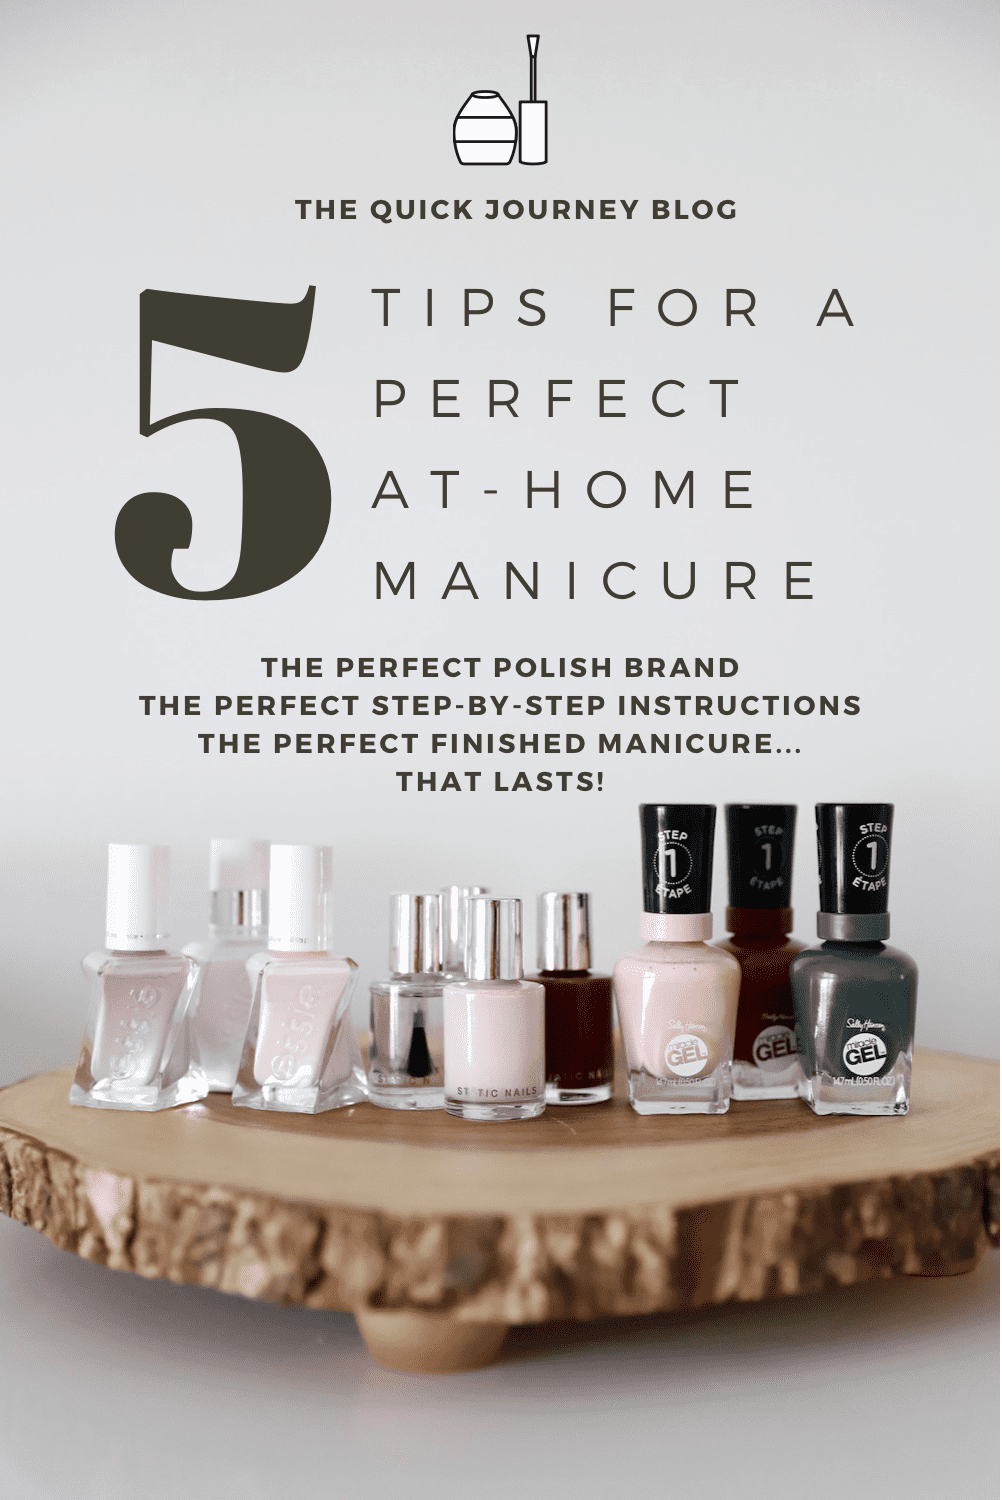 5 tips for diy at home manicure that lasts